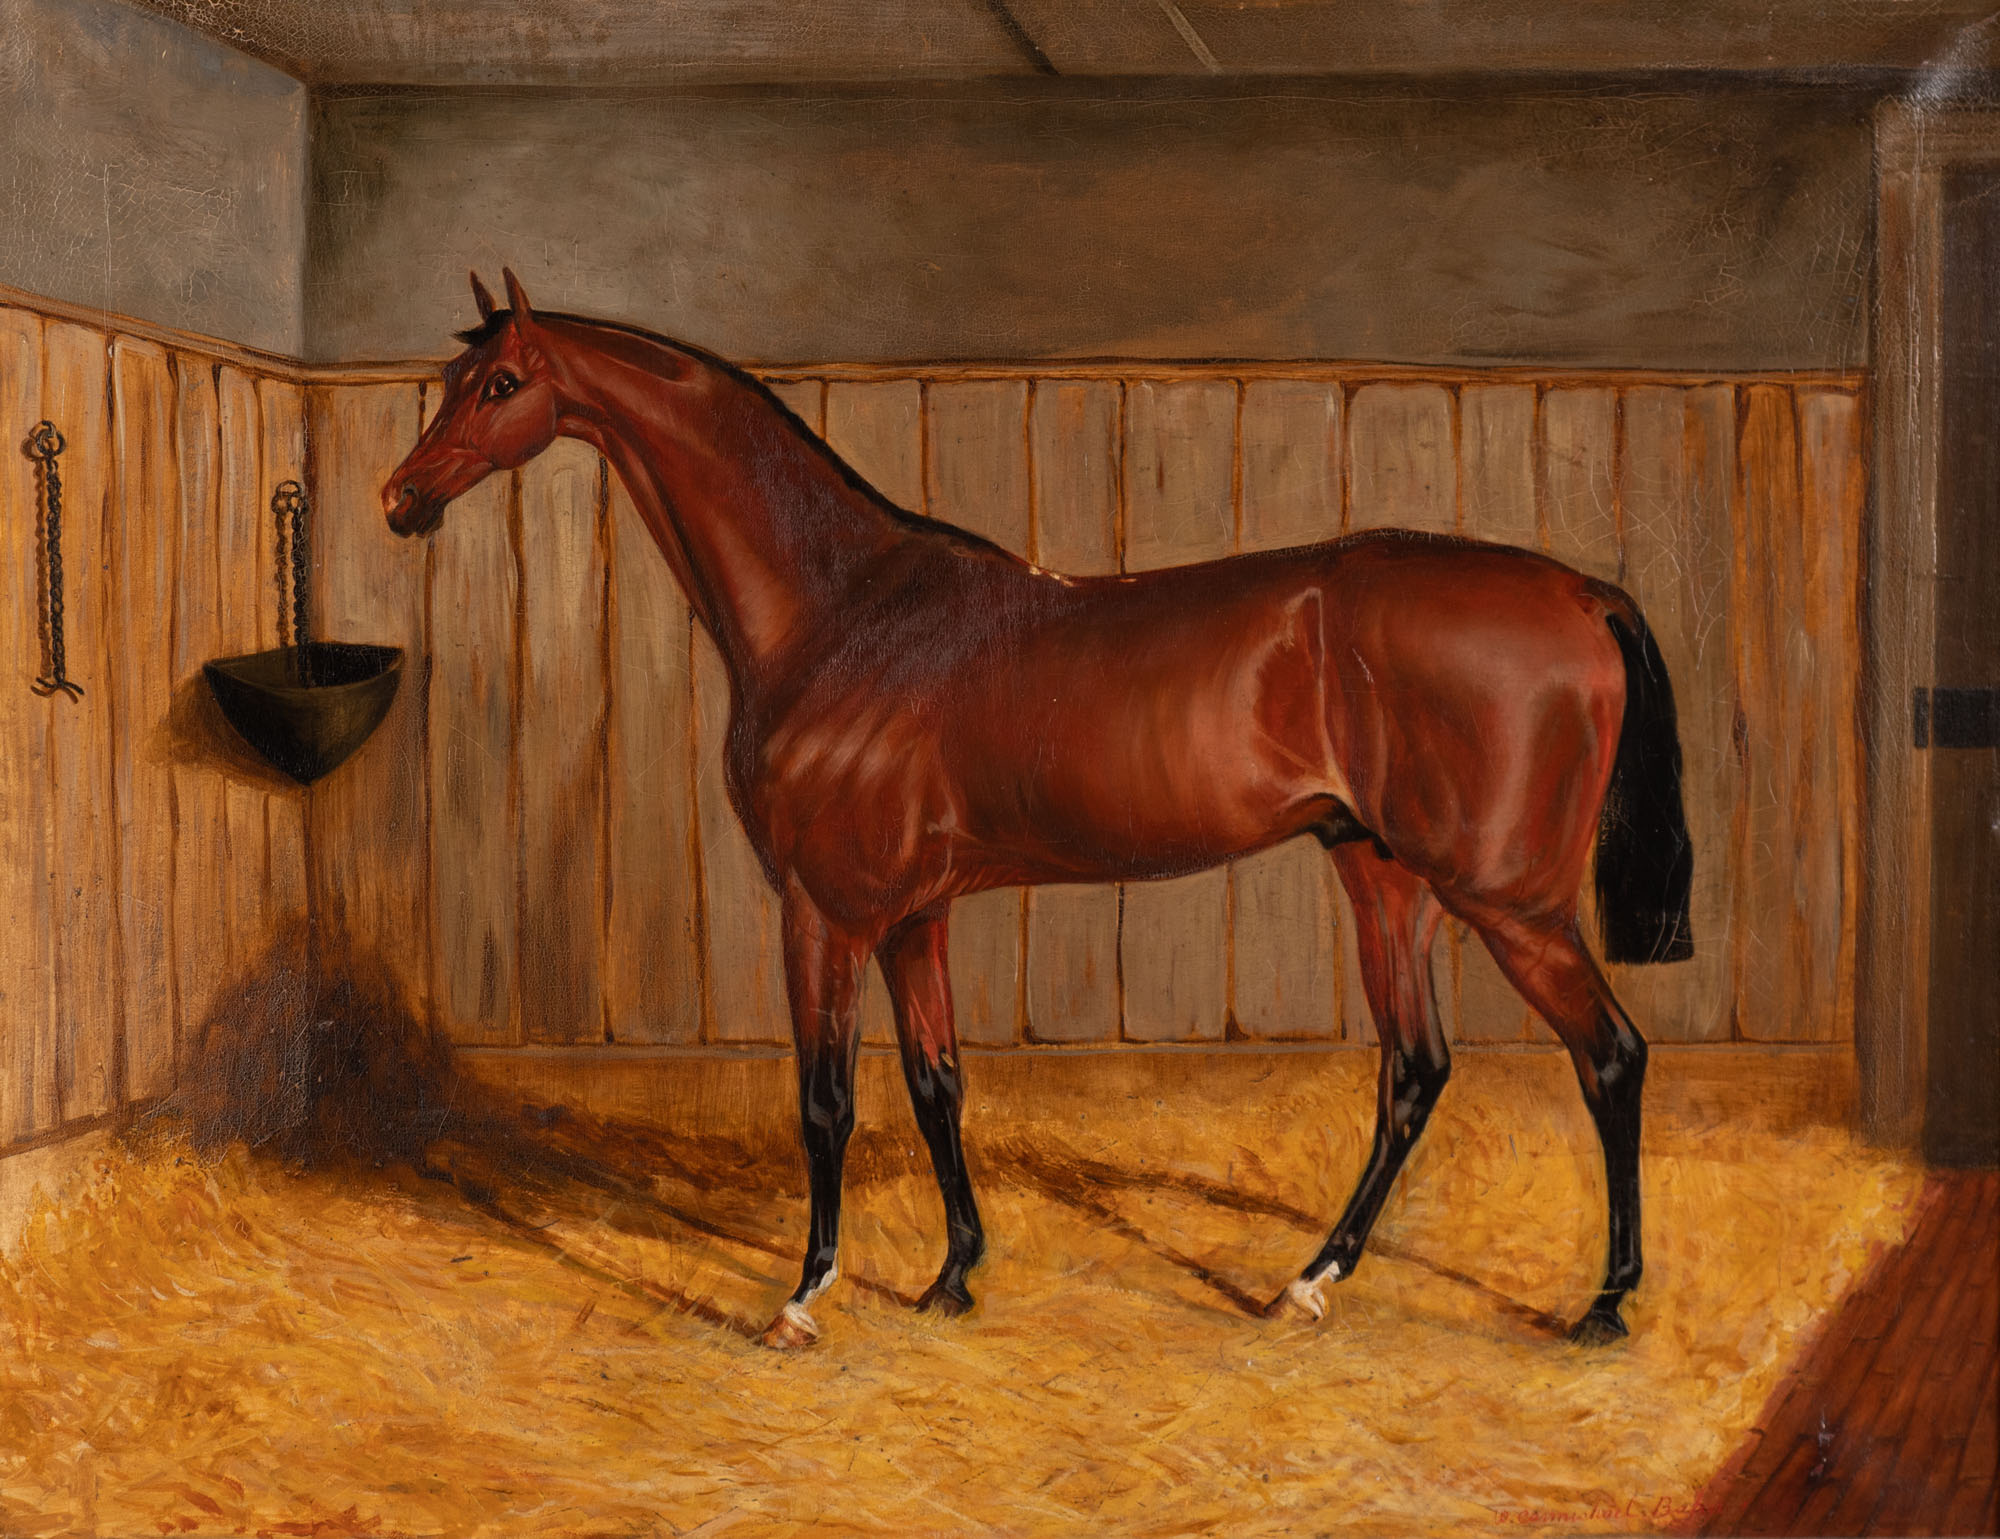 Troilus, a Dark Bay Racehorse, in a Stable, by W. Carmichael Baker.